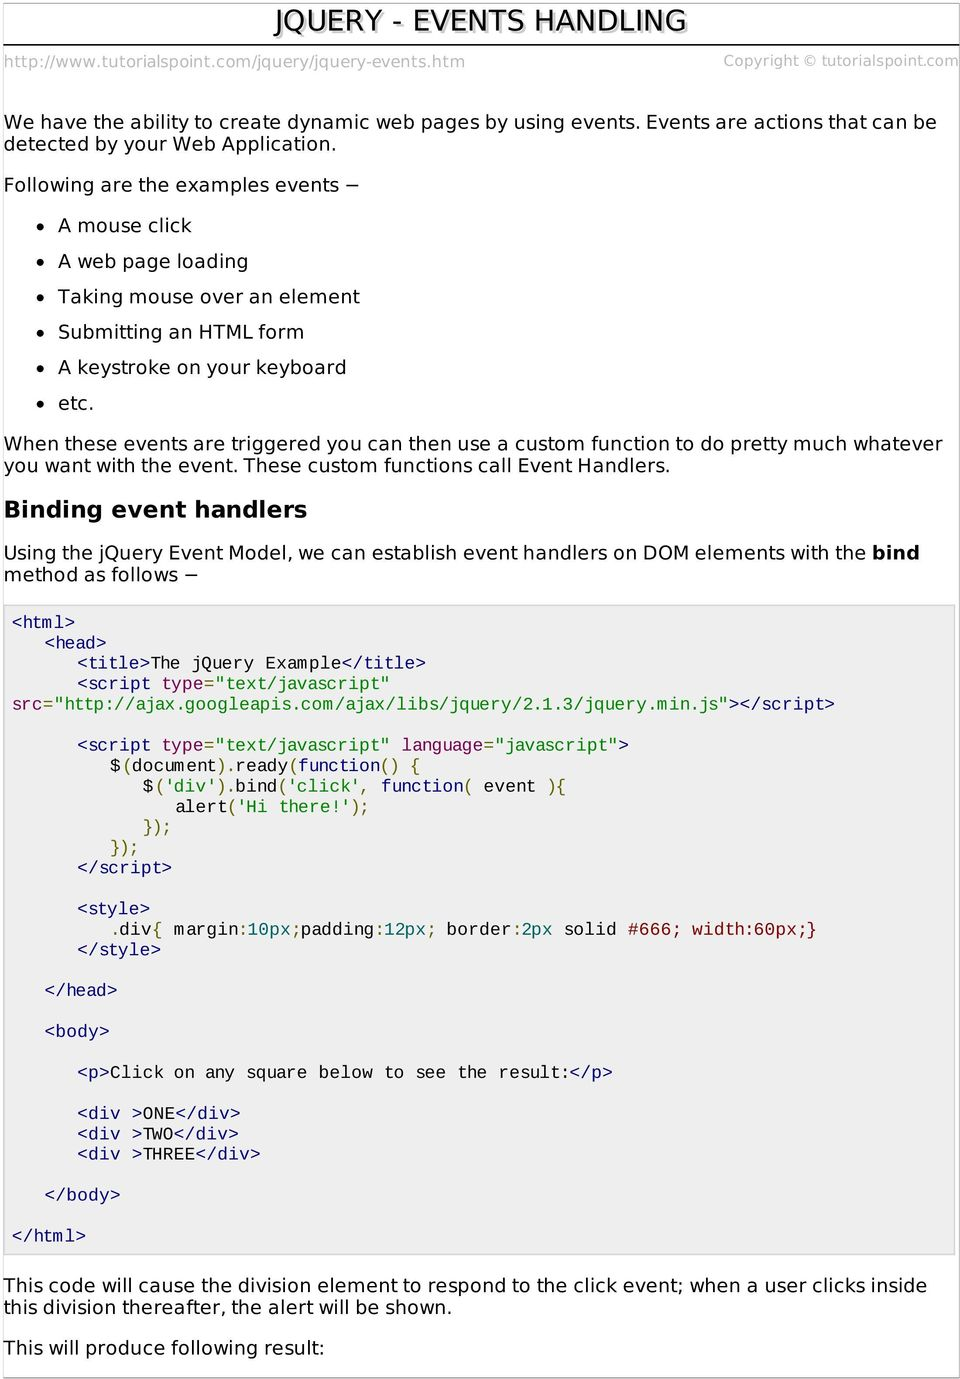 JQUERY - EVENTS HANDLING - PDF